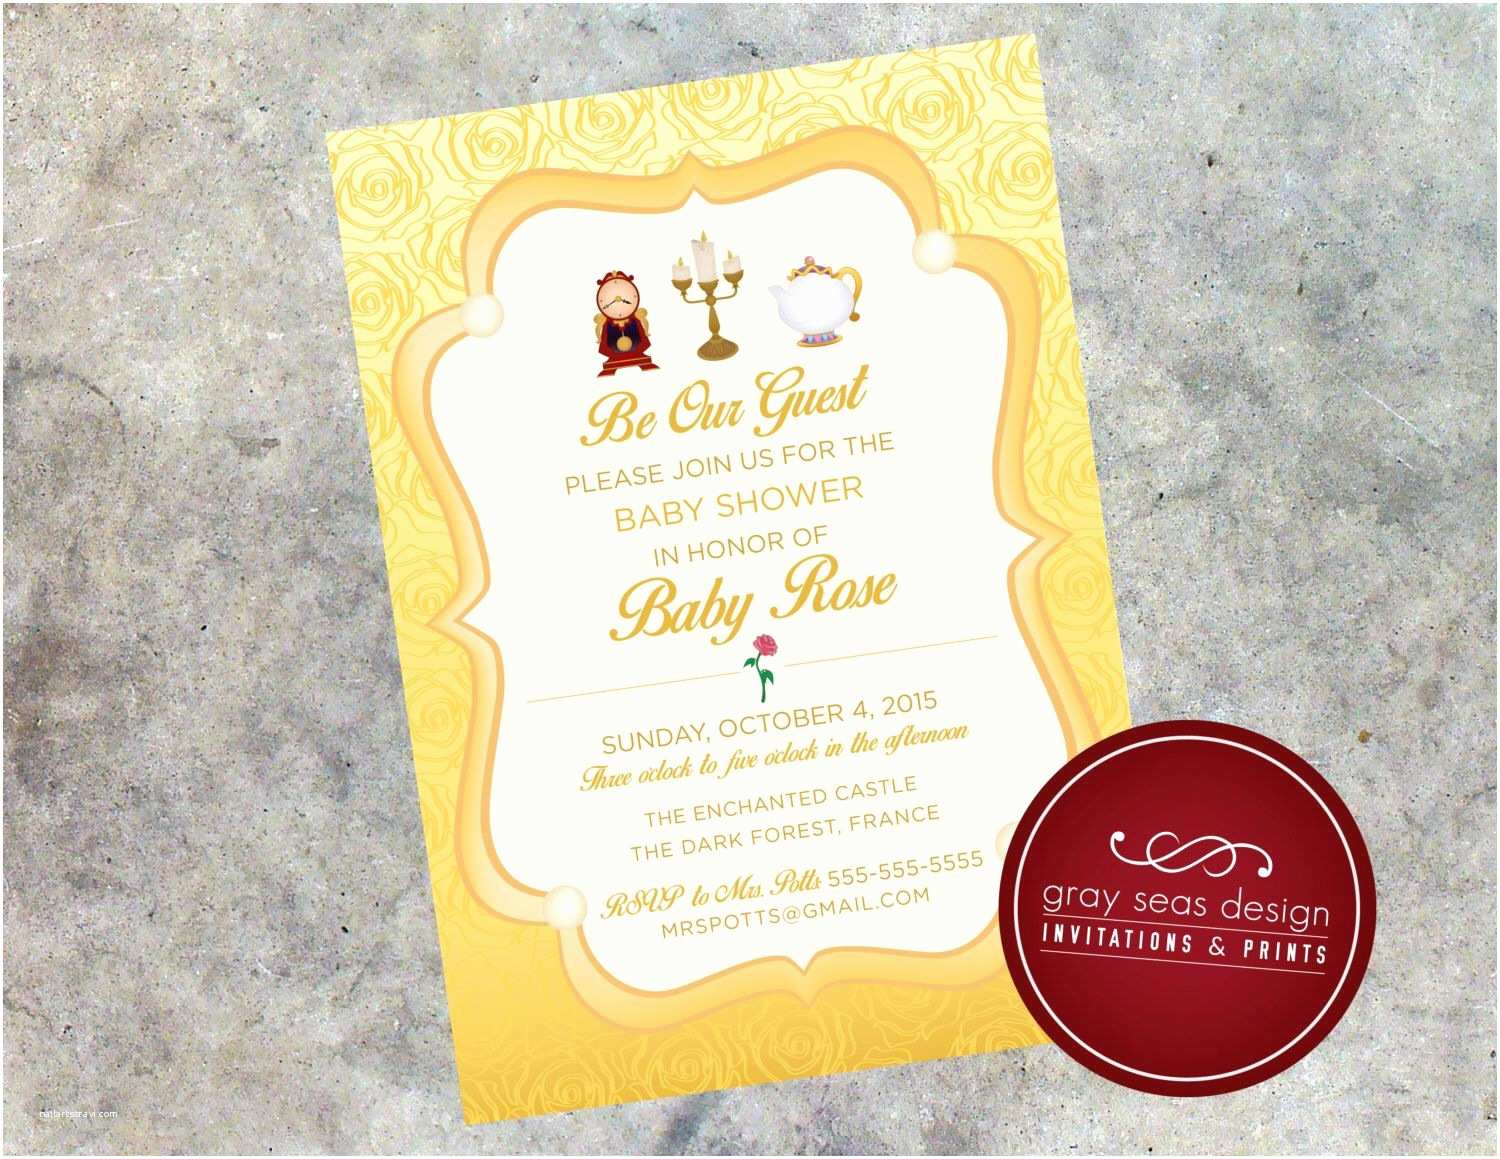 Beauty and the Beast Wedding Shower Invitations Be Our Guest Beauty and the Beast S Belle Inspired 5x7